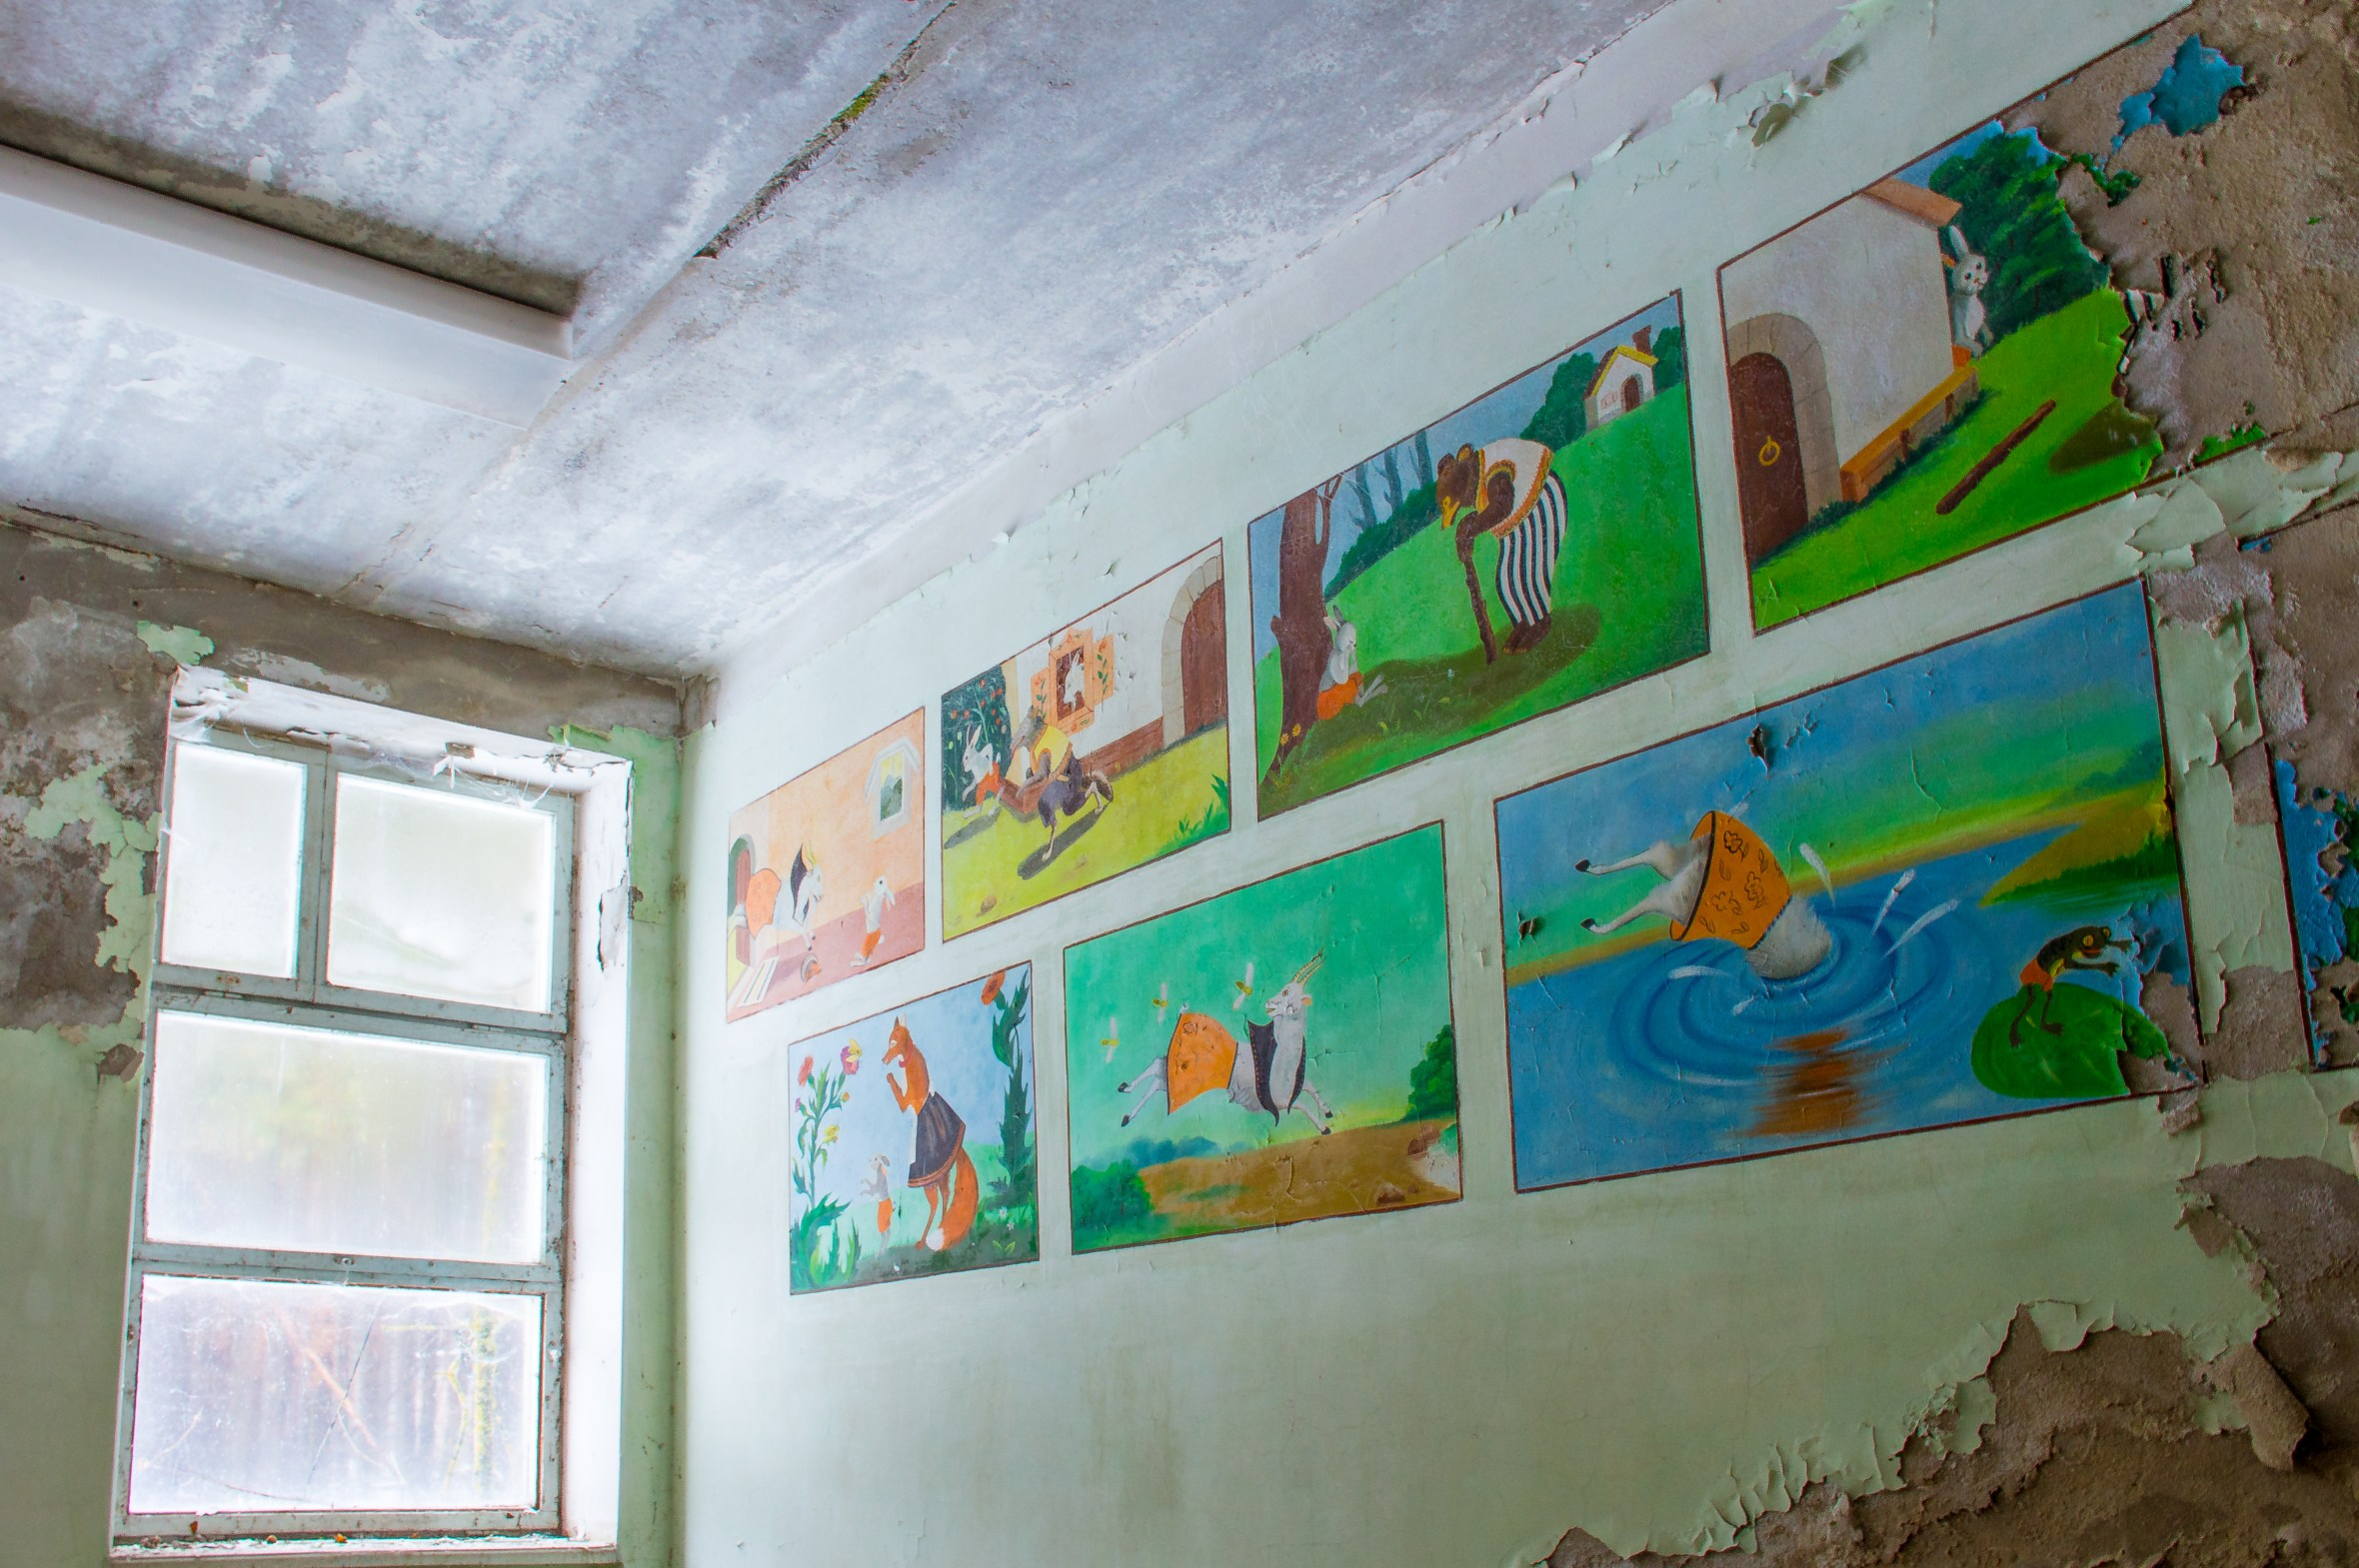 Didactic murals for children at the waiting area of Pripyat's bus station